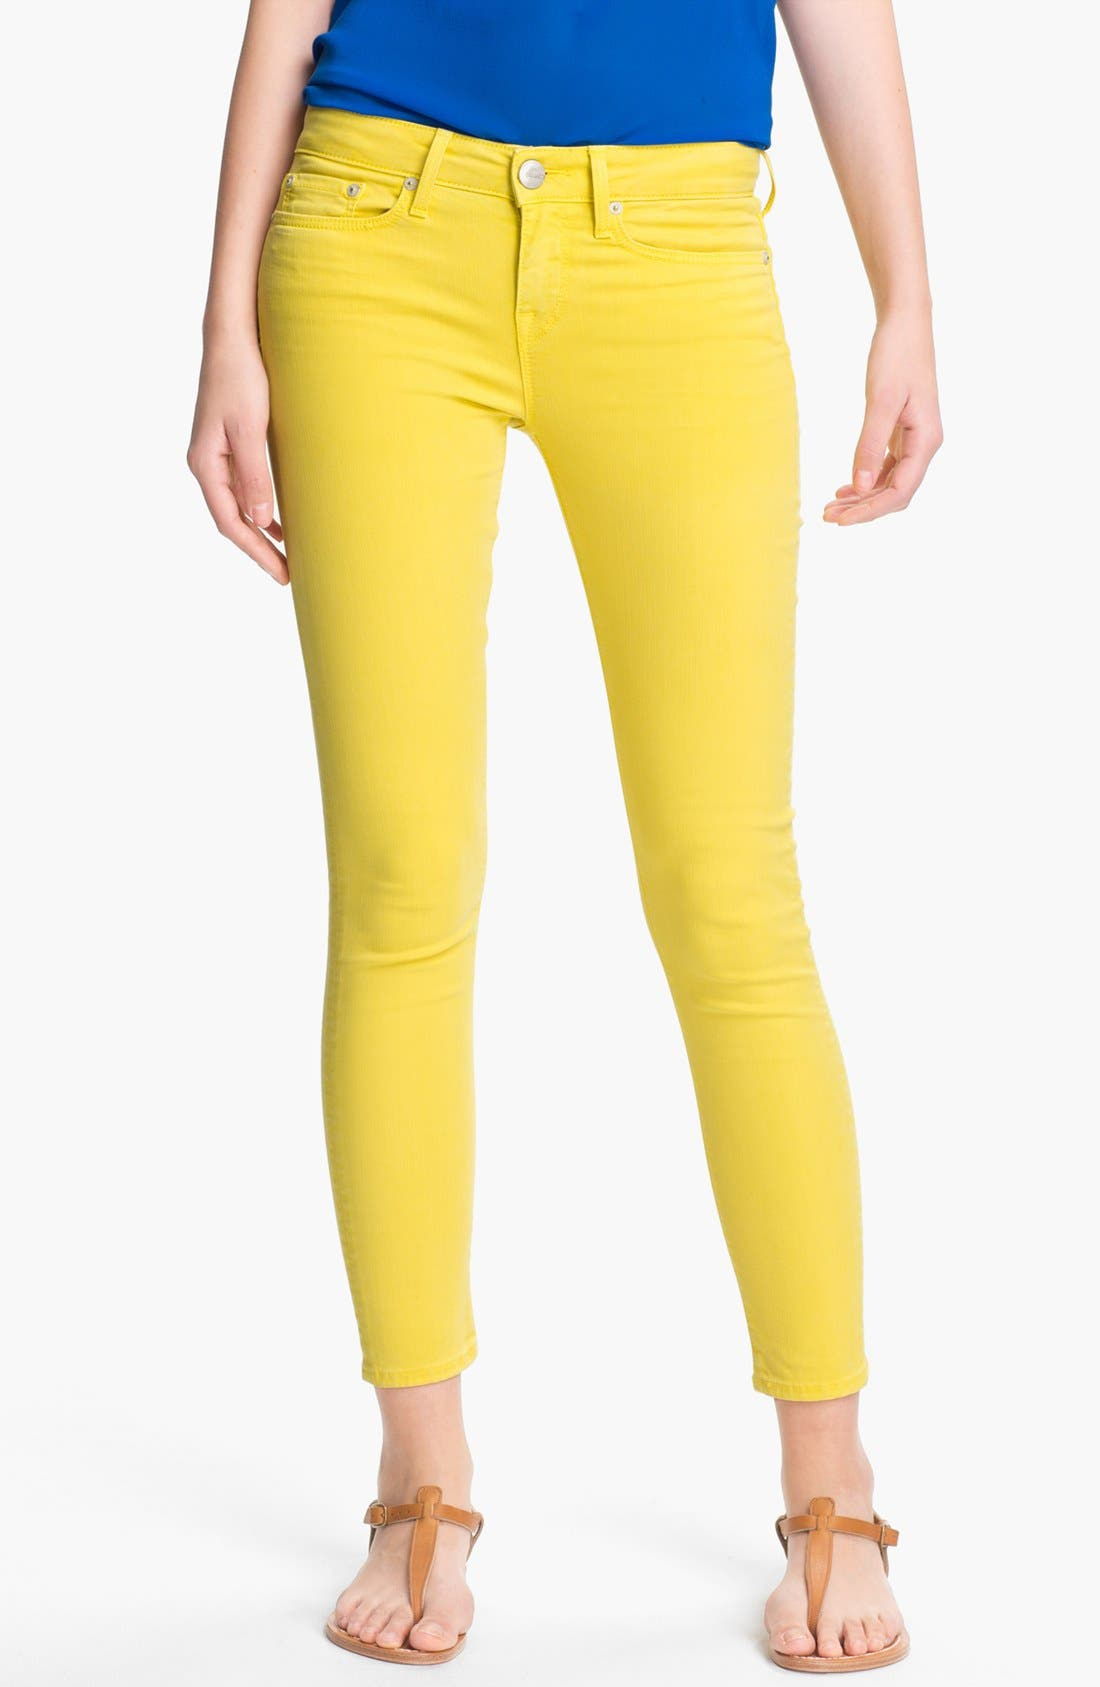 Alternate Image 1 Selected - Vince Crop Skinny Stretch Jeans (Citris)